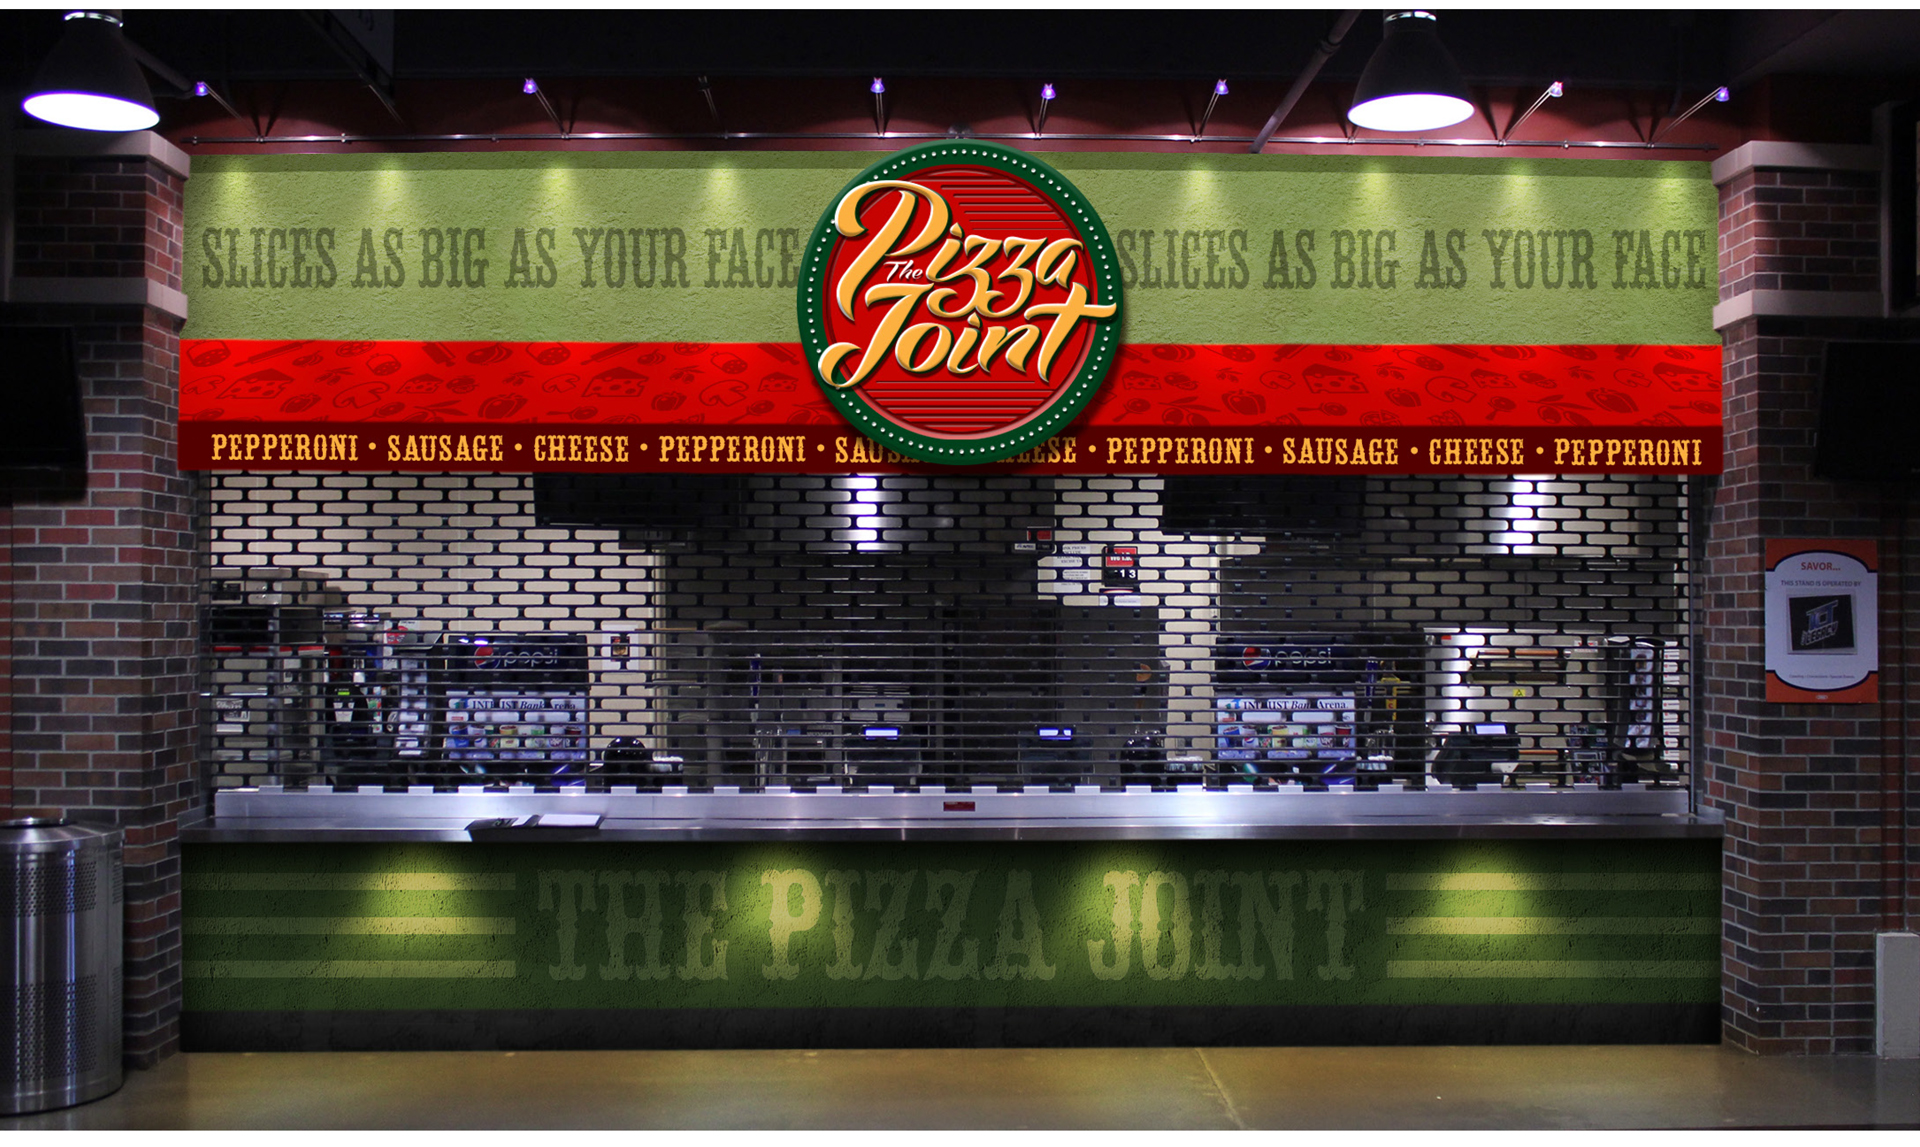 the pizza joint concession